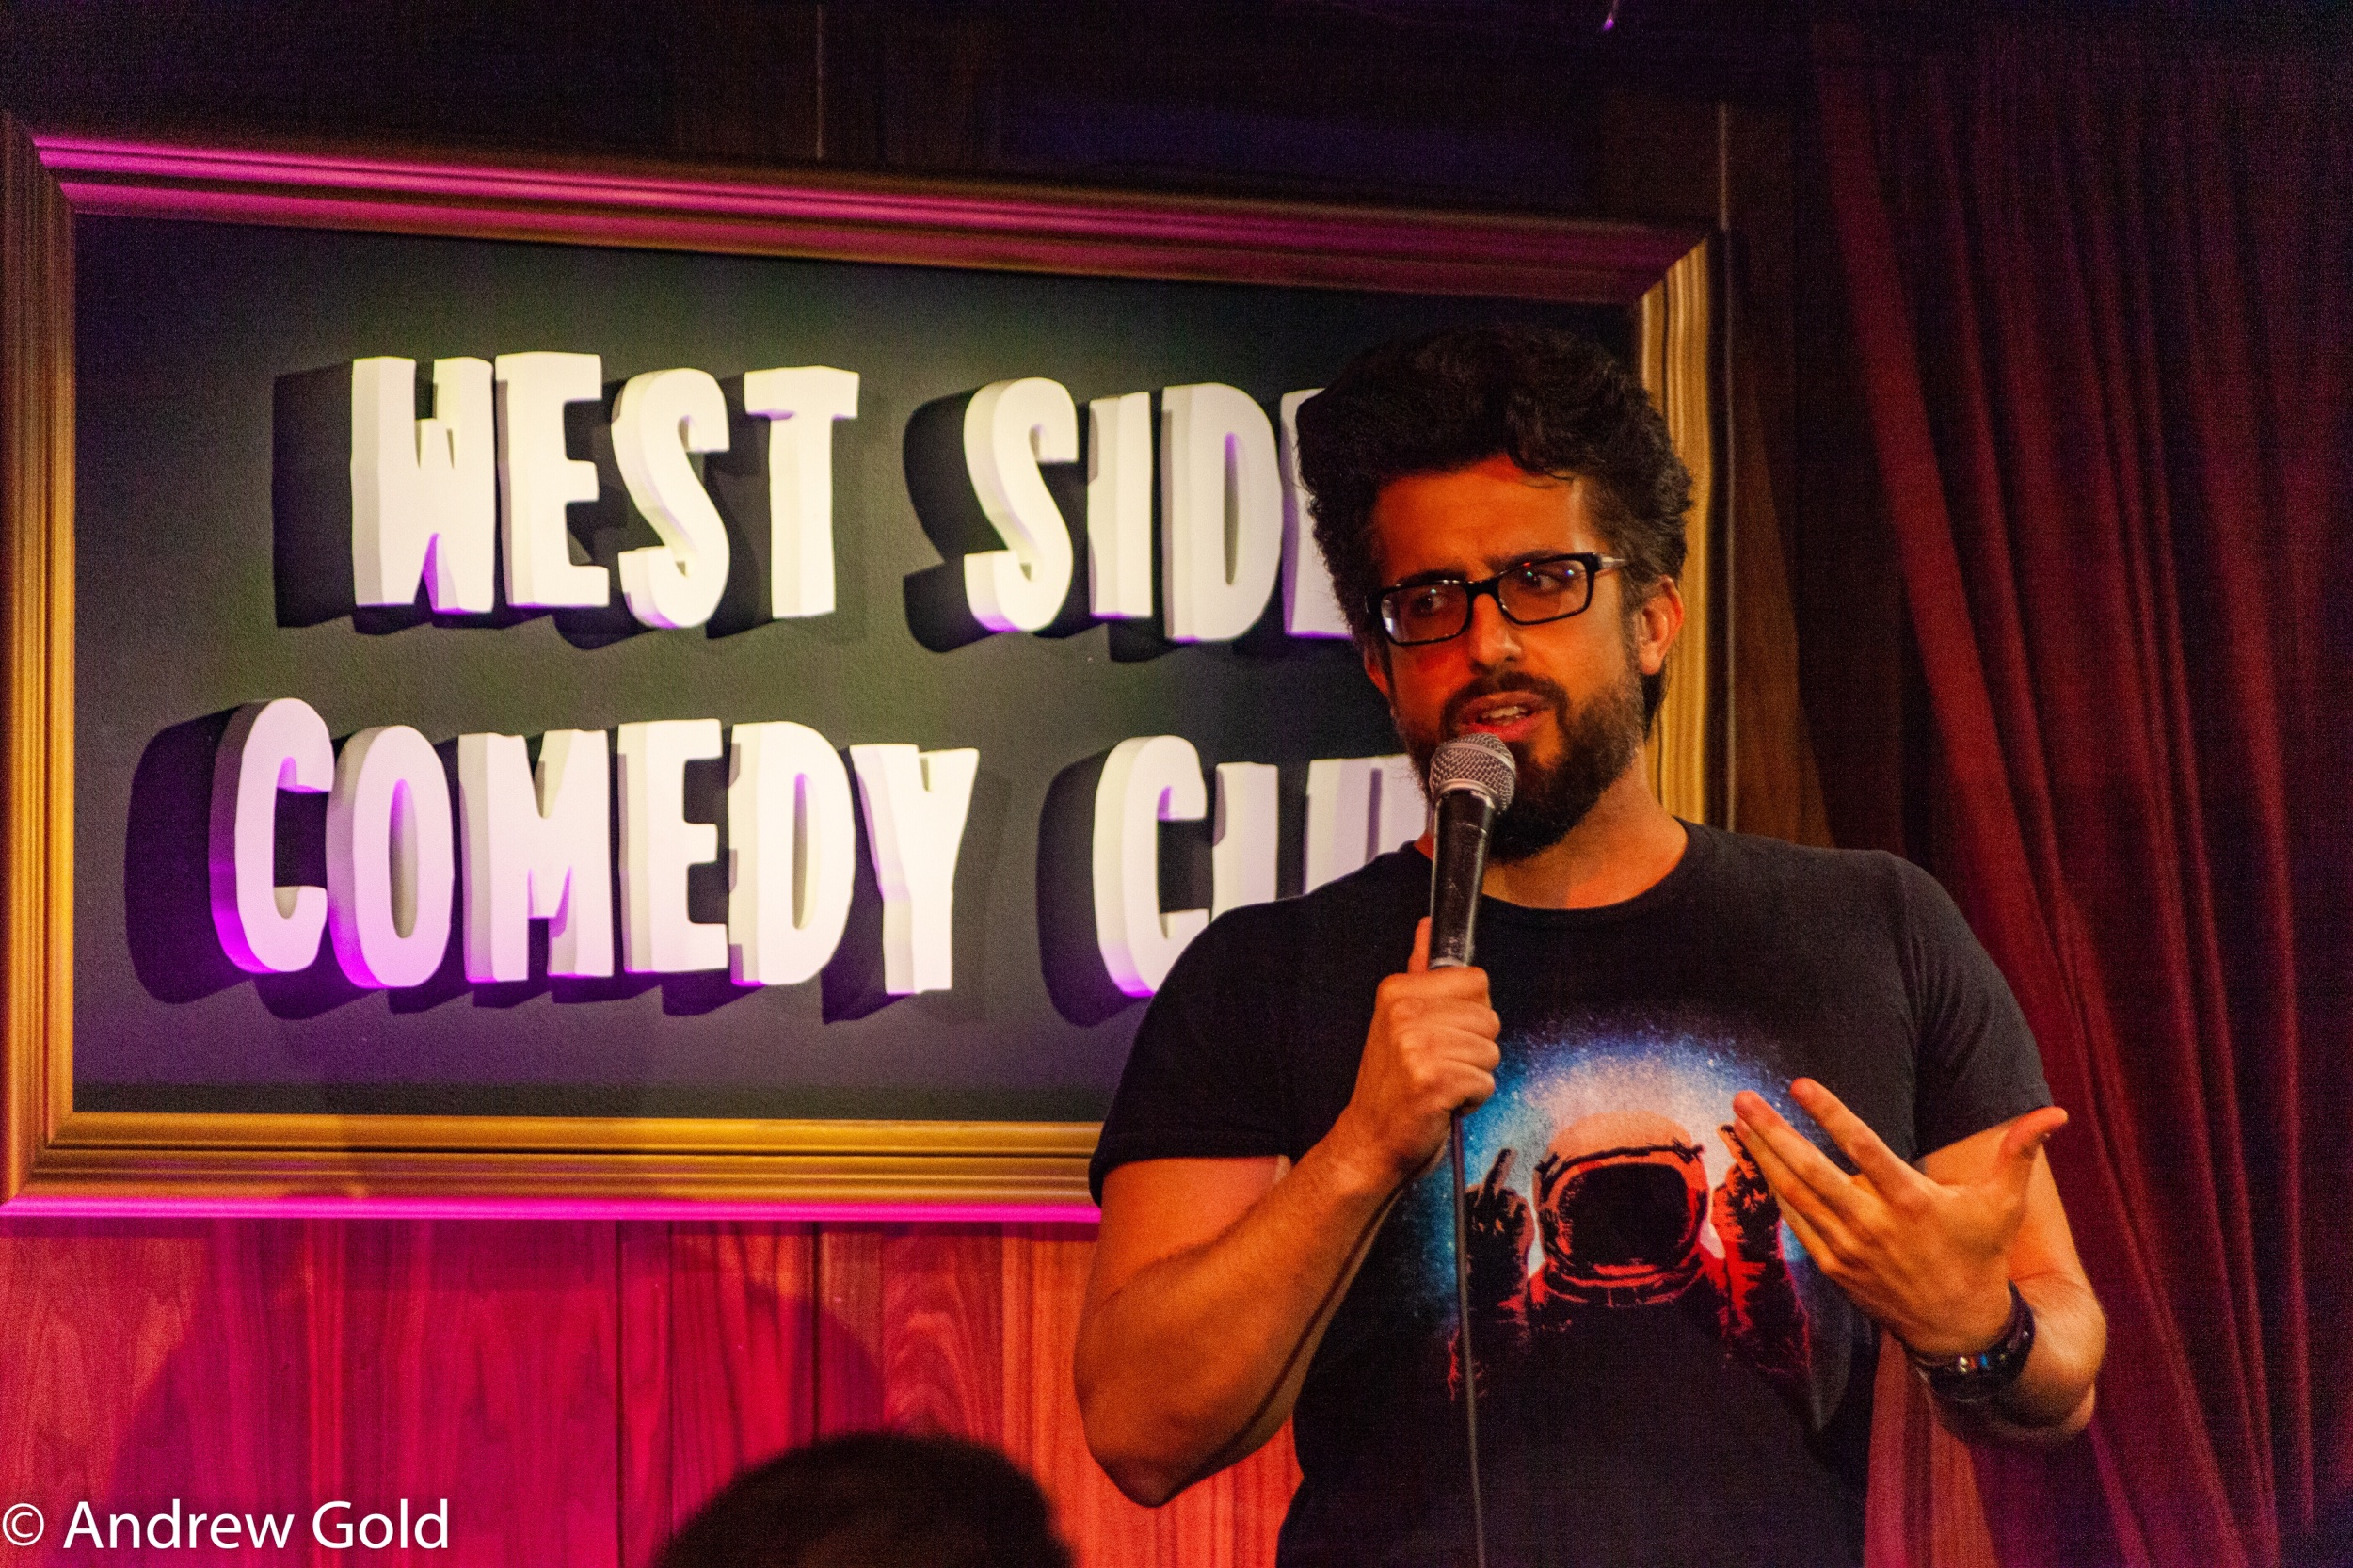 West Side Comedy Club - New York, NY